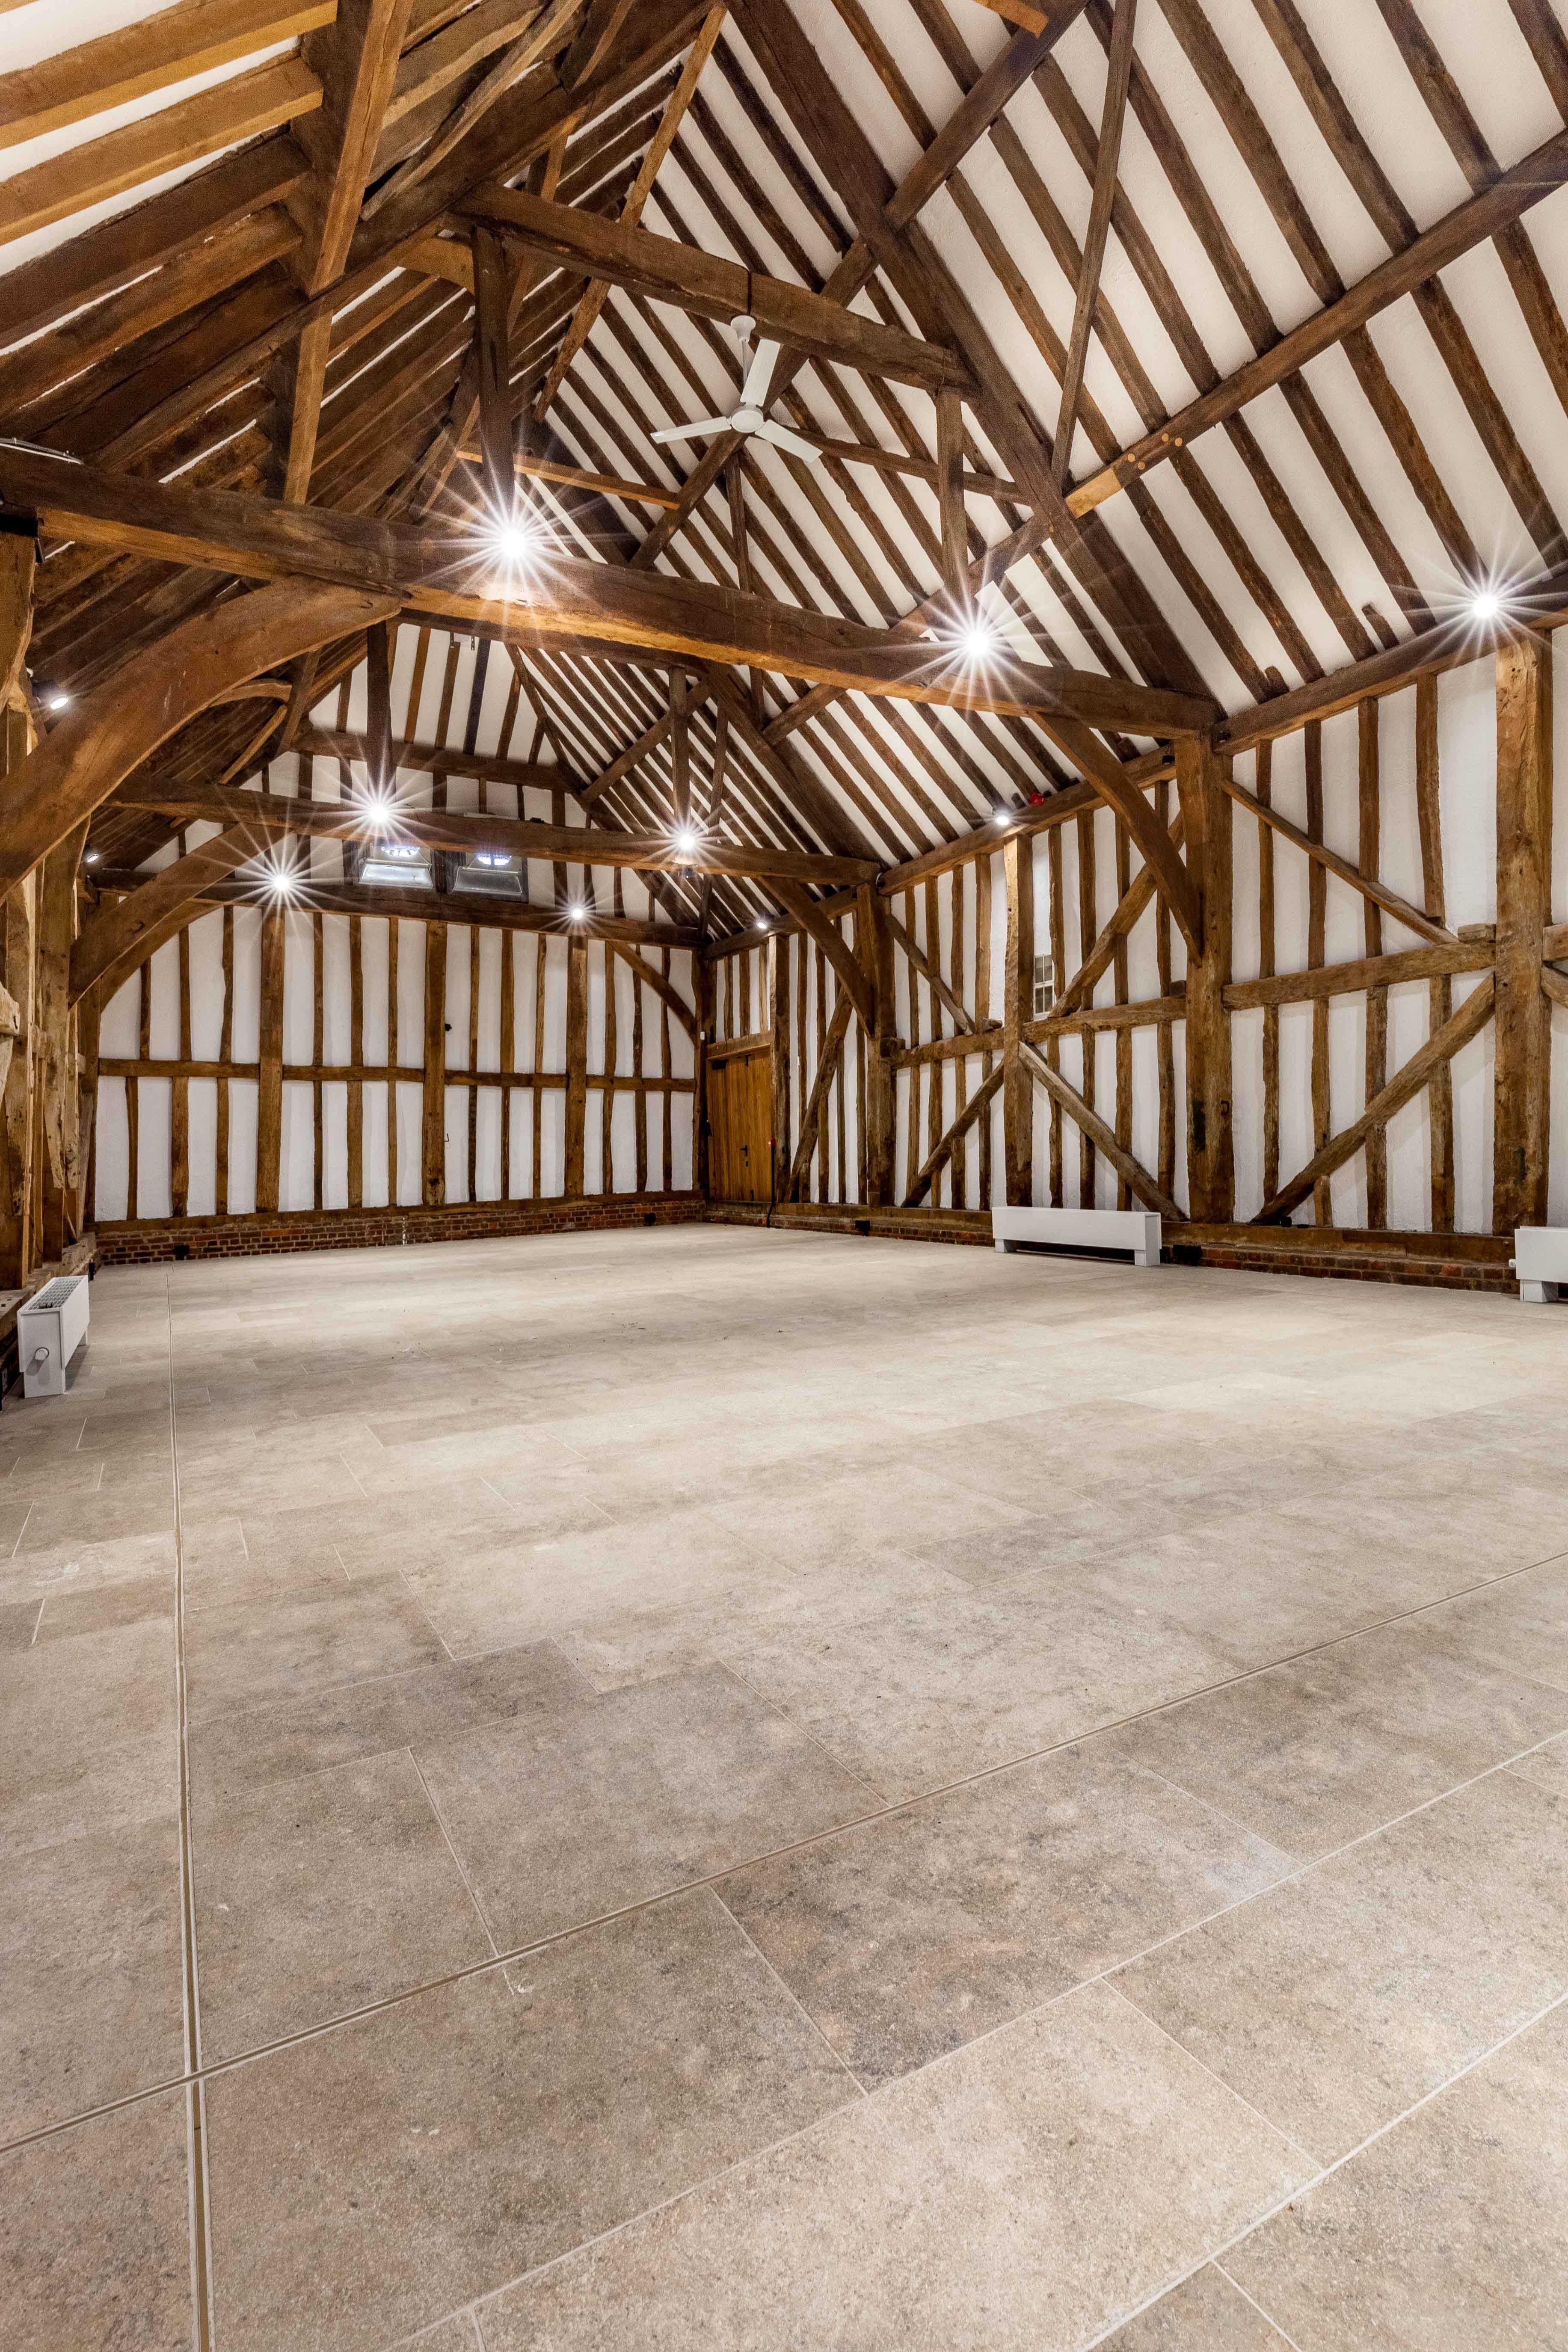 A Beautiful Wedding And Event Venue At Headstone Manor The Barn Features Natural Stone Floor